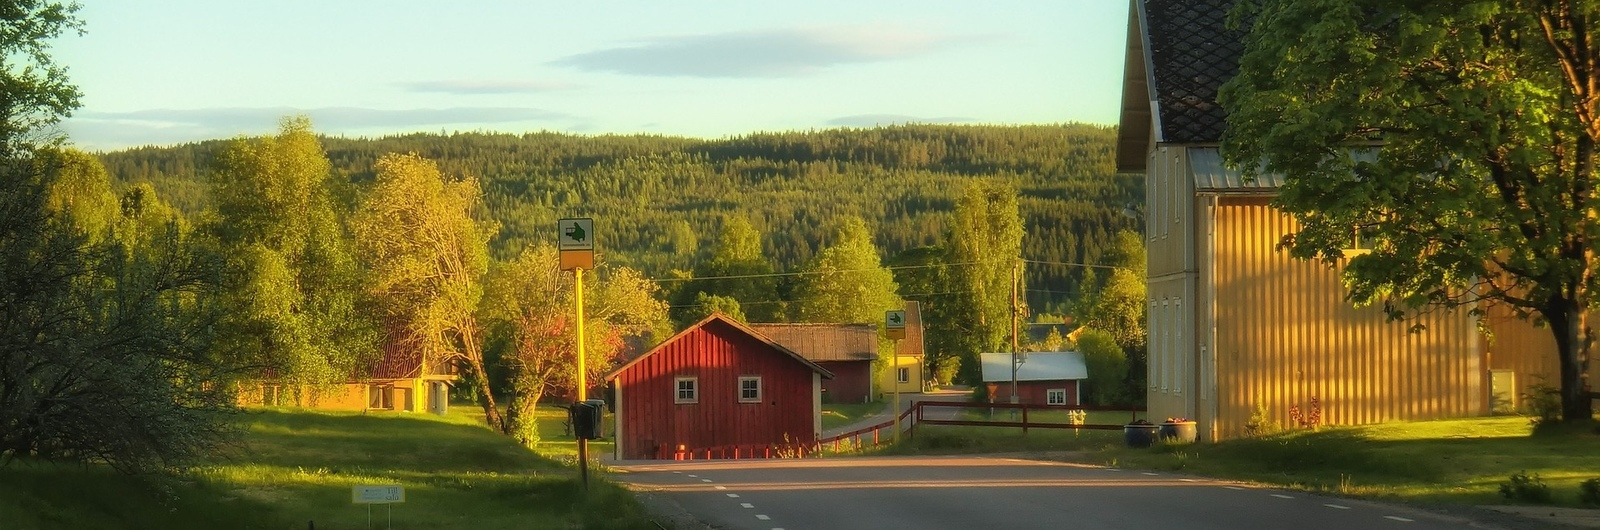 moelndal city header